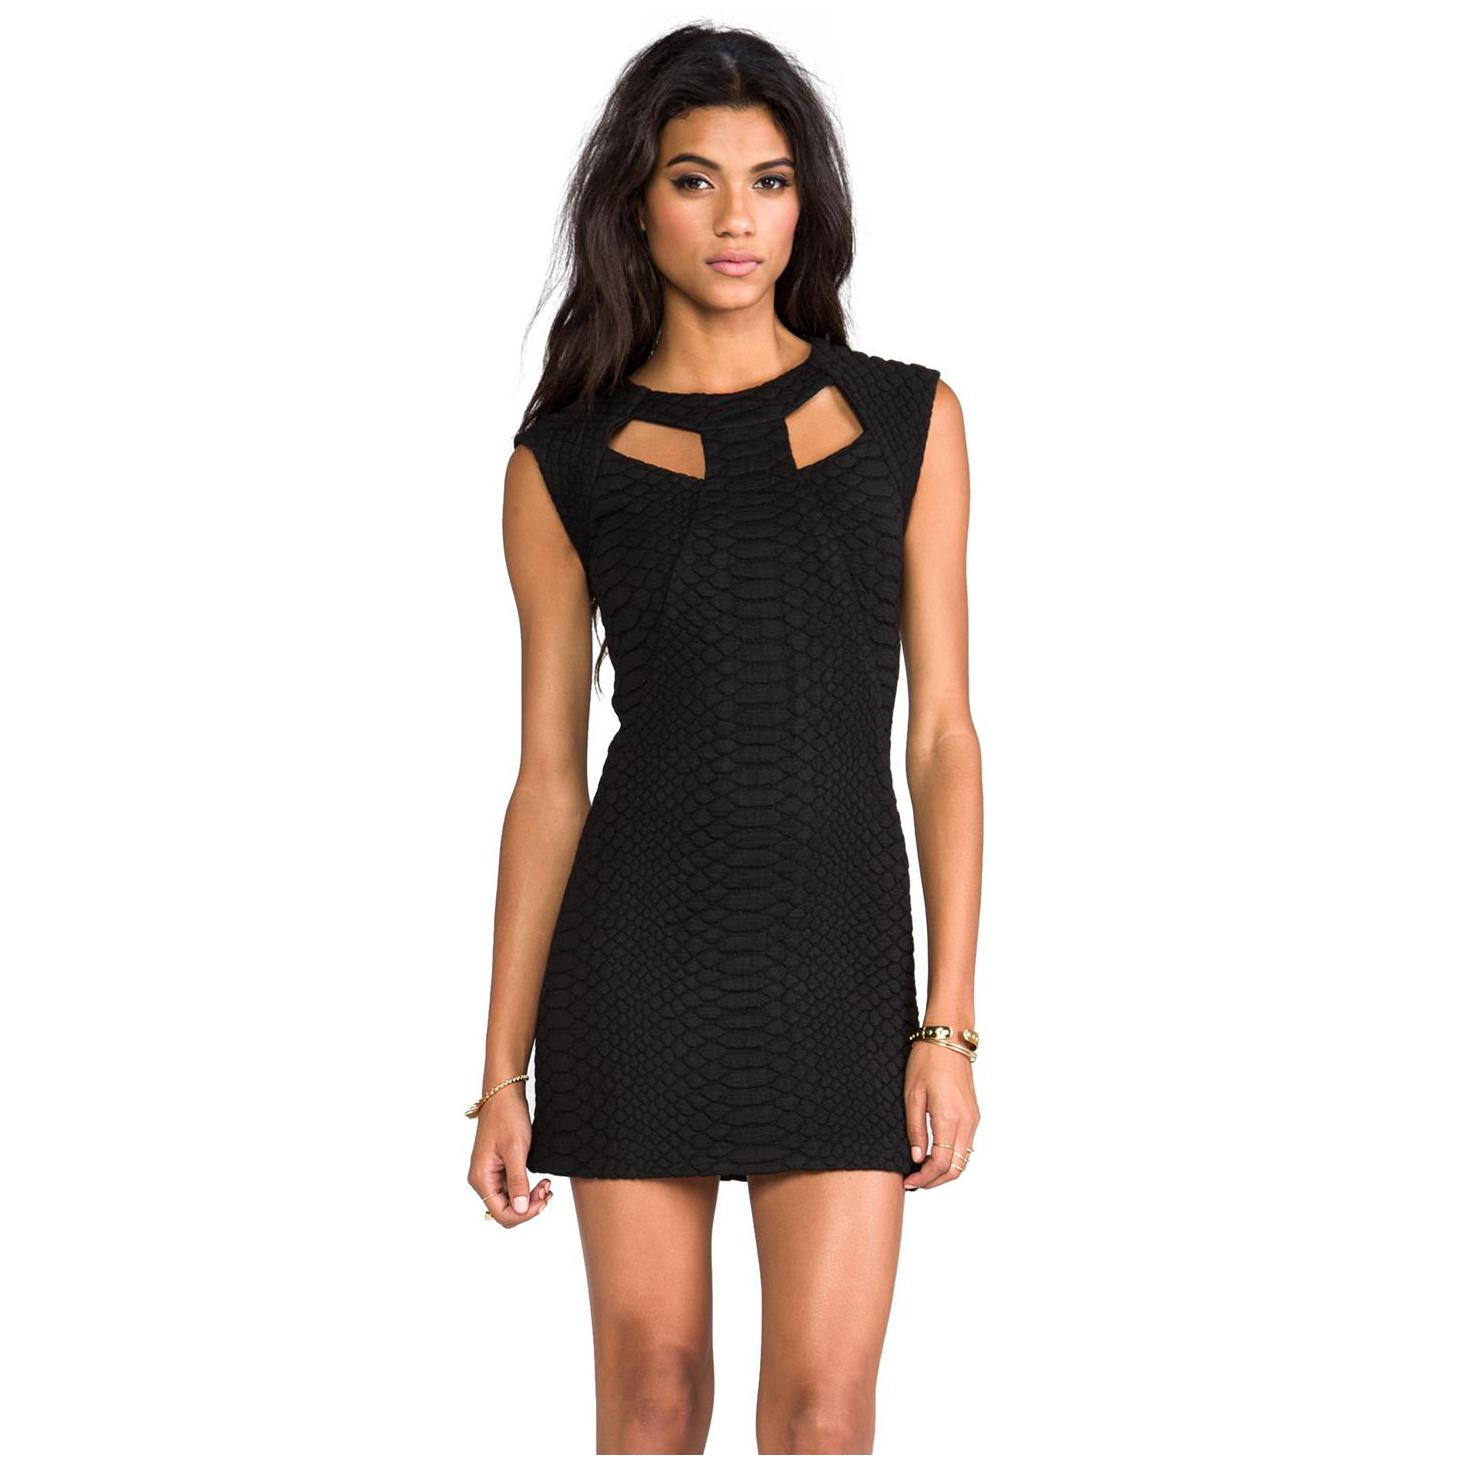 Shop for Black women's casual dresses, cocktail dresses, formal dresses and special occasion dresses available in missy, plus and petites sizes at 0549sahibi.tk